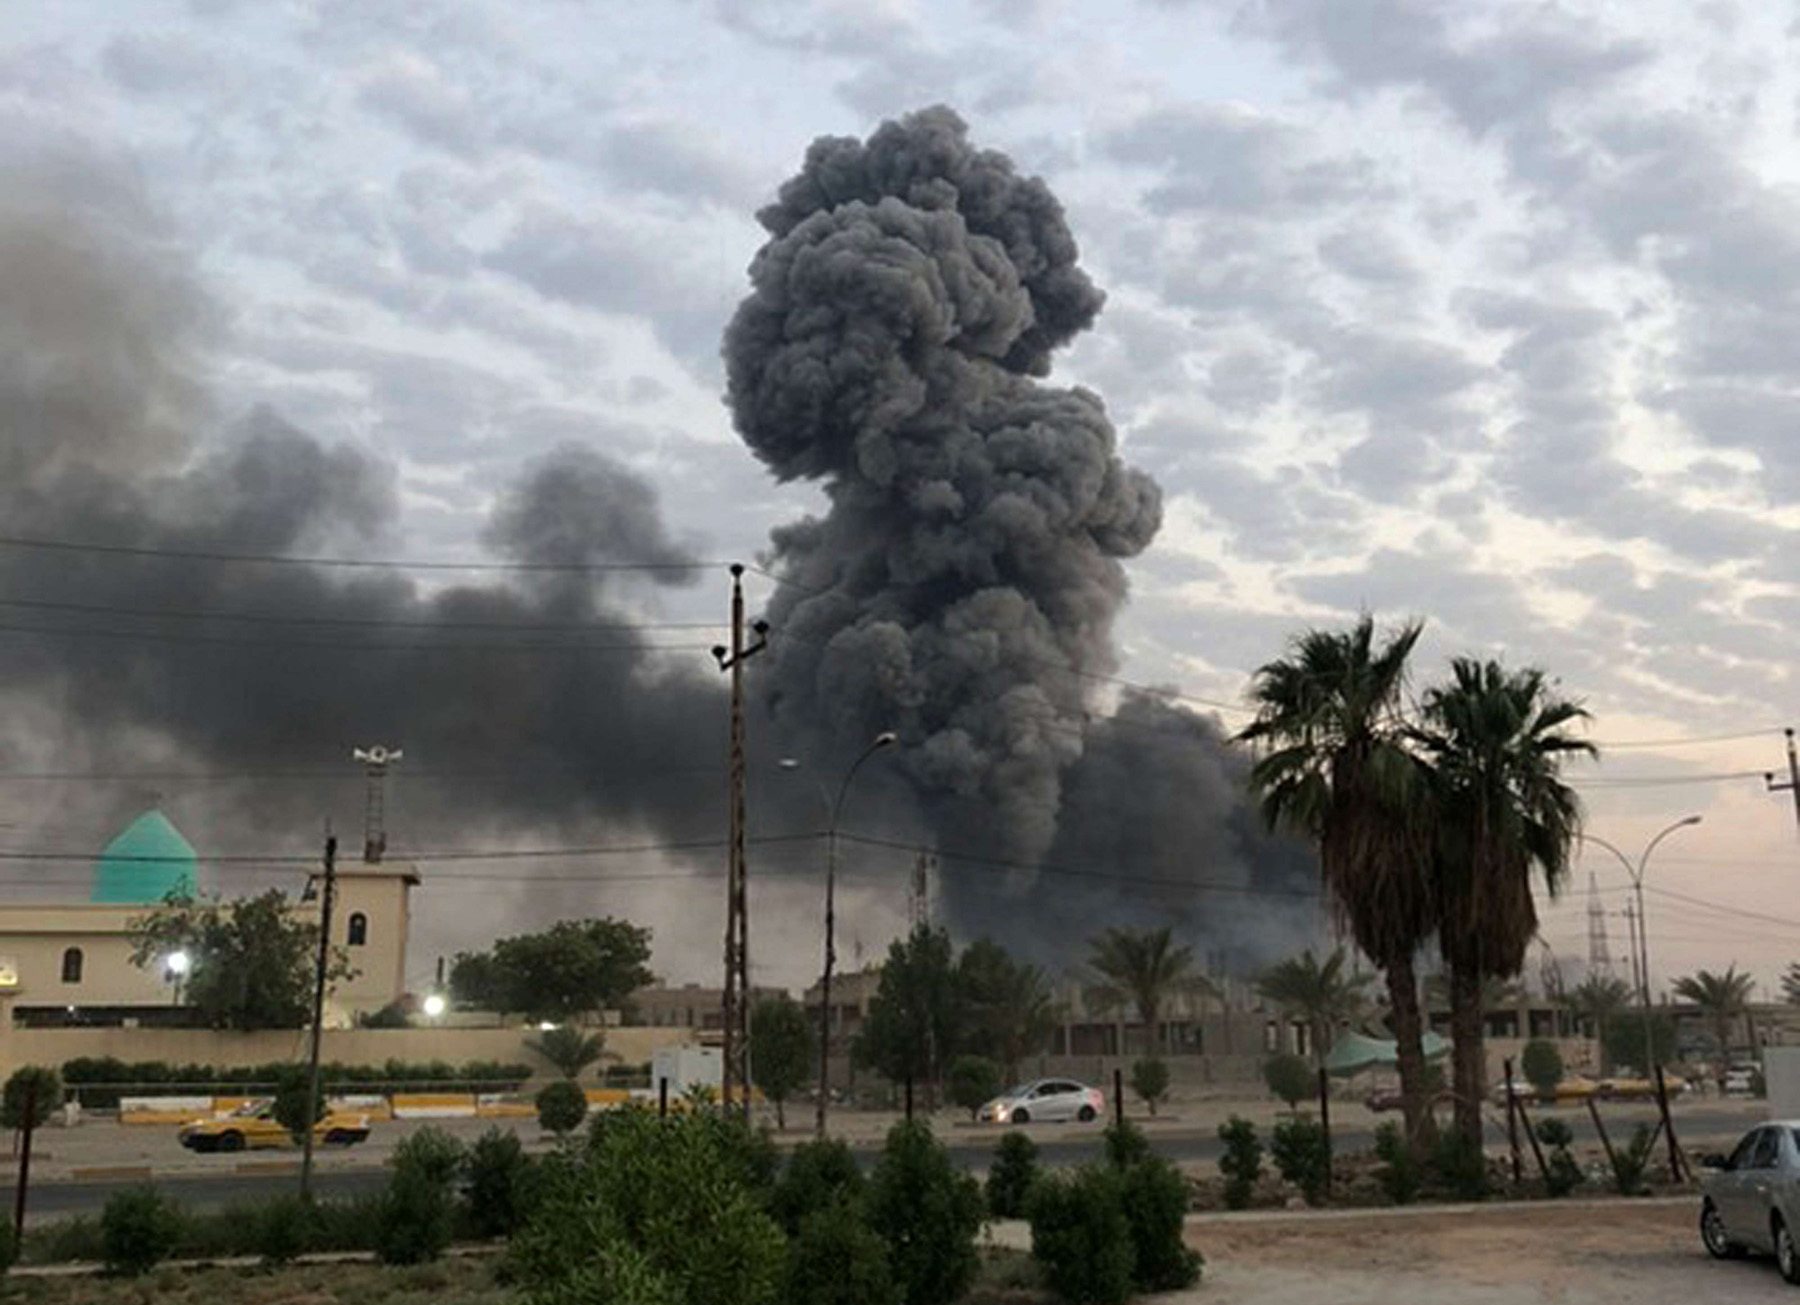 Plumes of smoke rise after an explosion at a military base south-west of Baghdad, August 12. (AP)